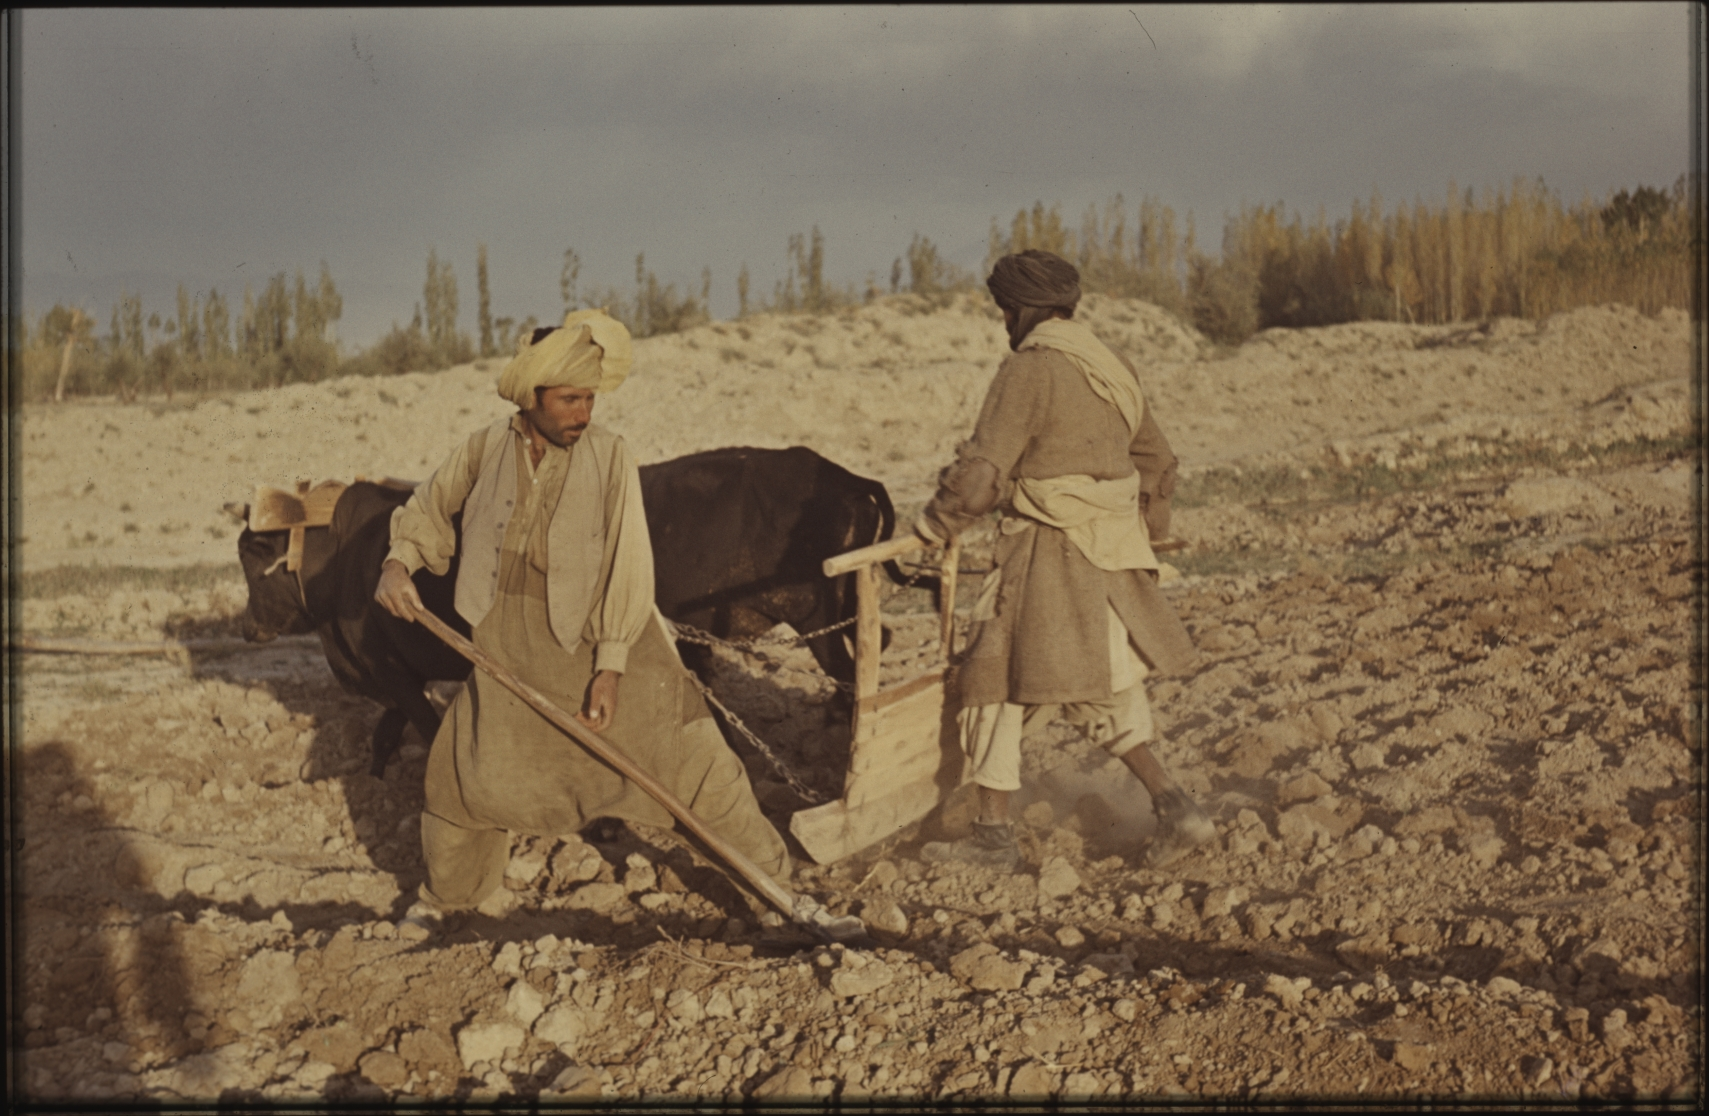 A group of nomads have bought a piece of land to make their living as farmers. Many nomads find this difficult, however, as they have no knowledge of agriculture. Most fail to sustain themselves and may eventually be forced to sell the land and return to nomadic life. Photo: Jean Bourgeois, 1969